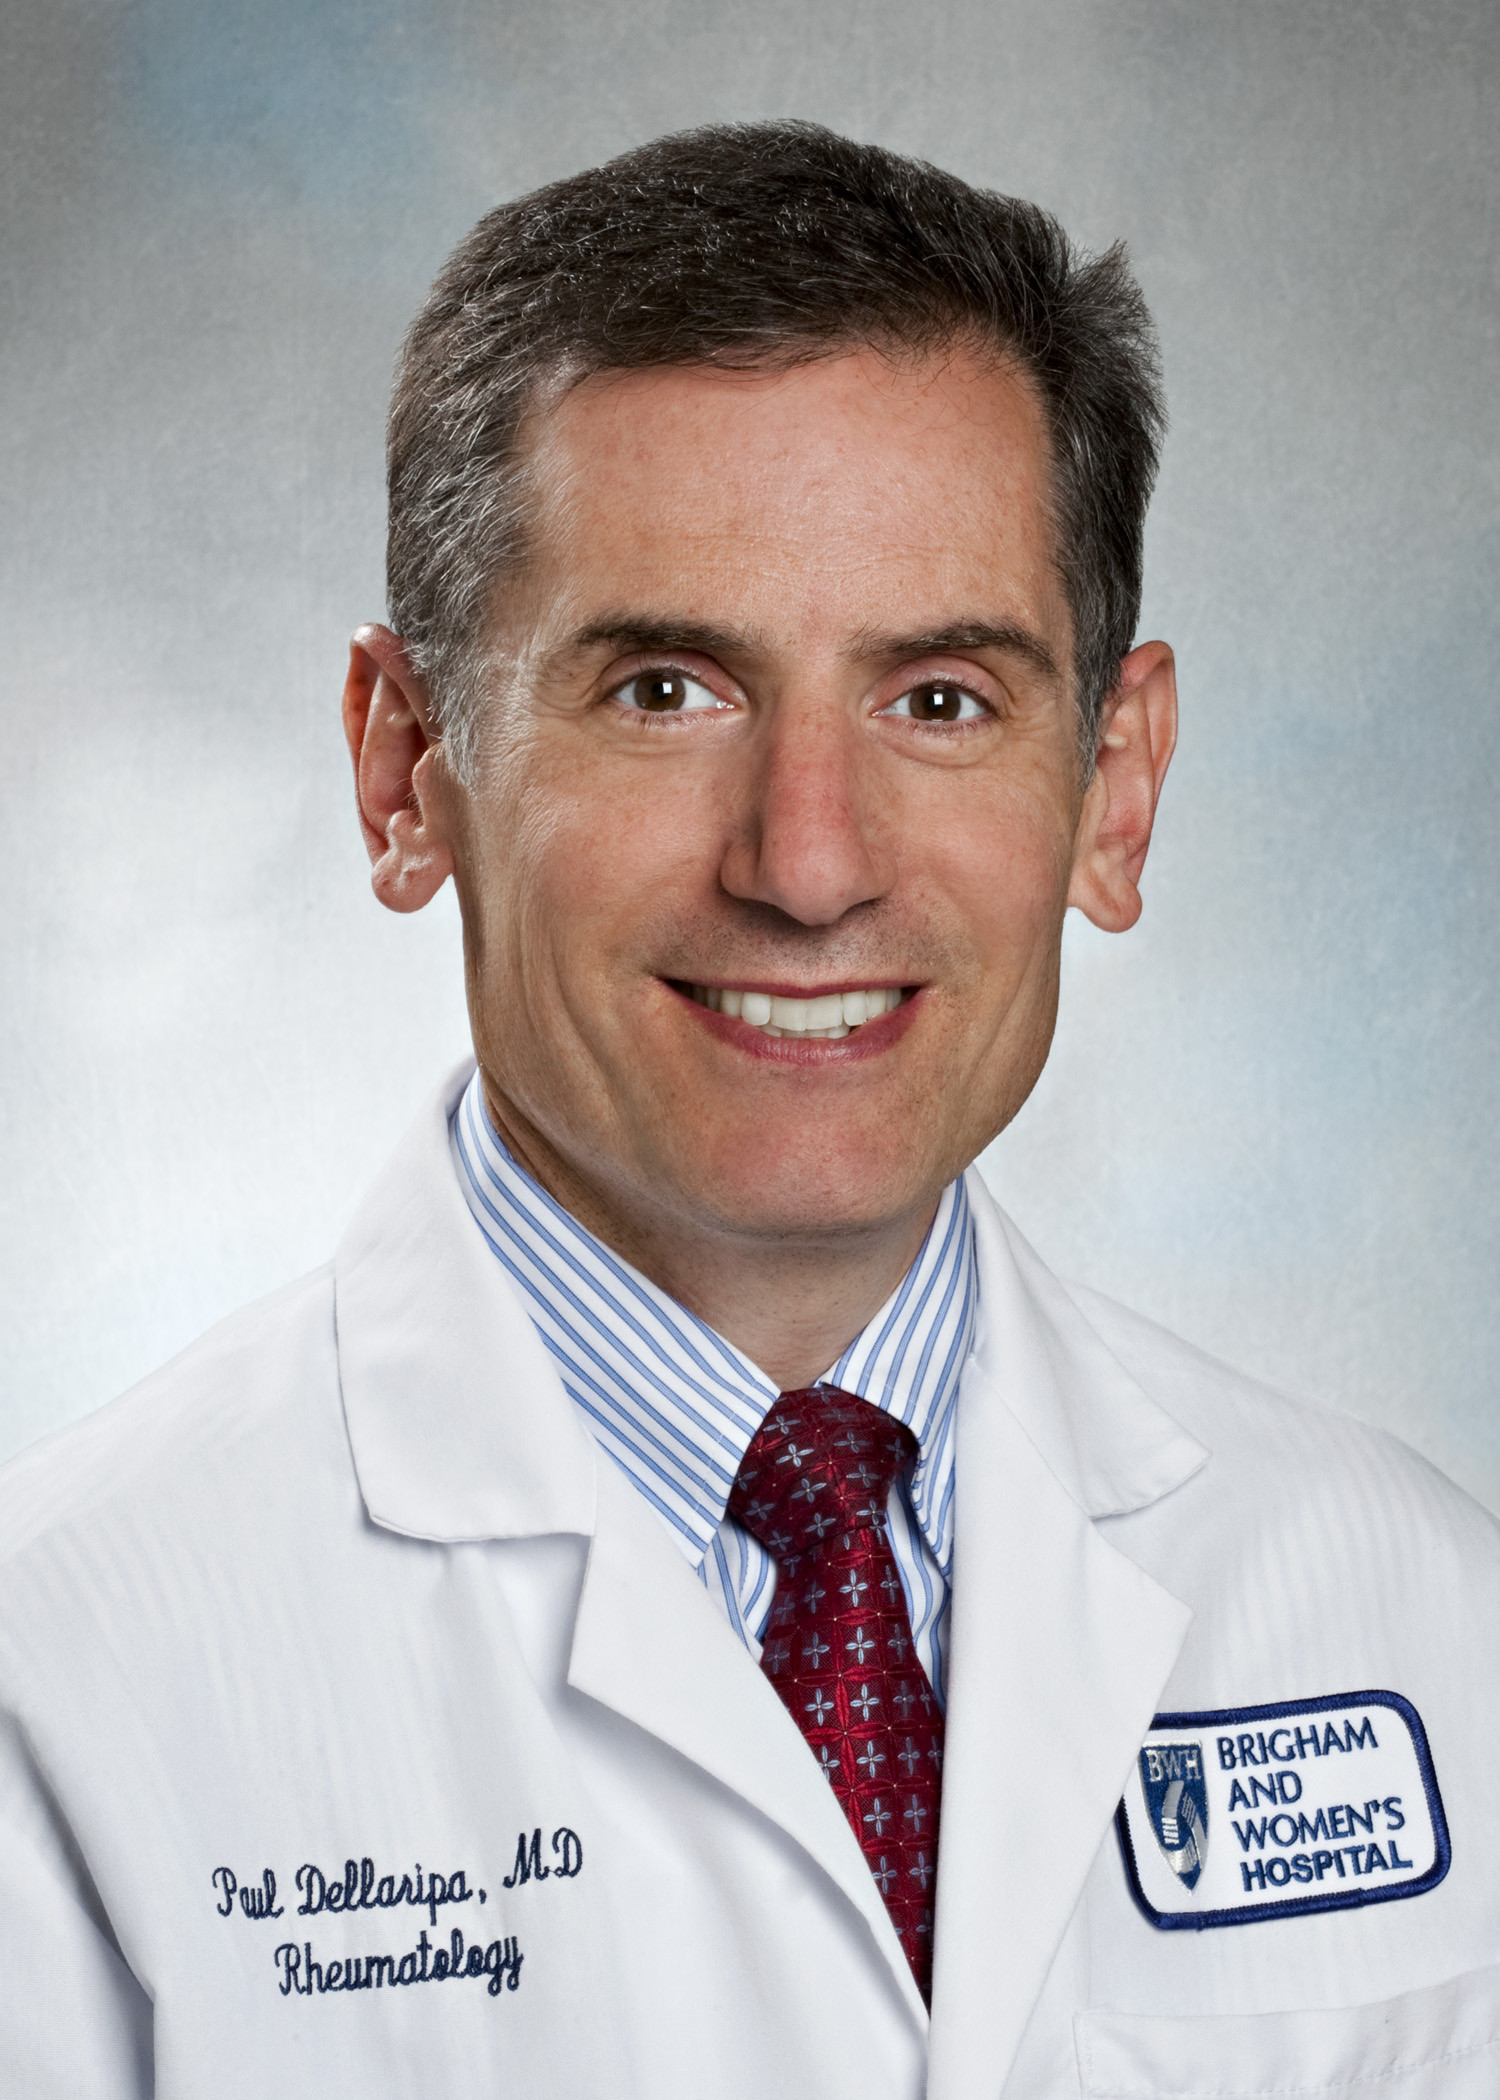 Paul F. Dellaripa, MD